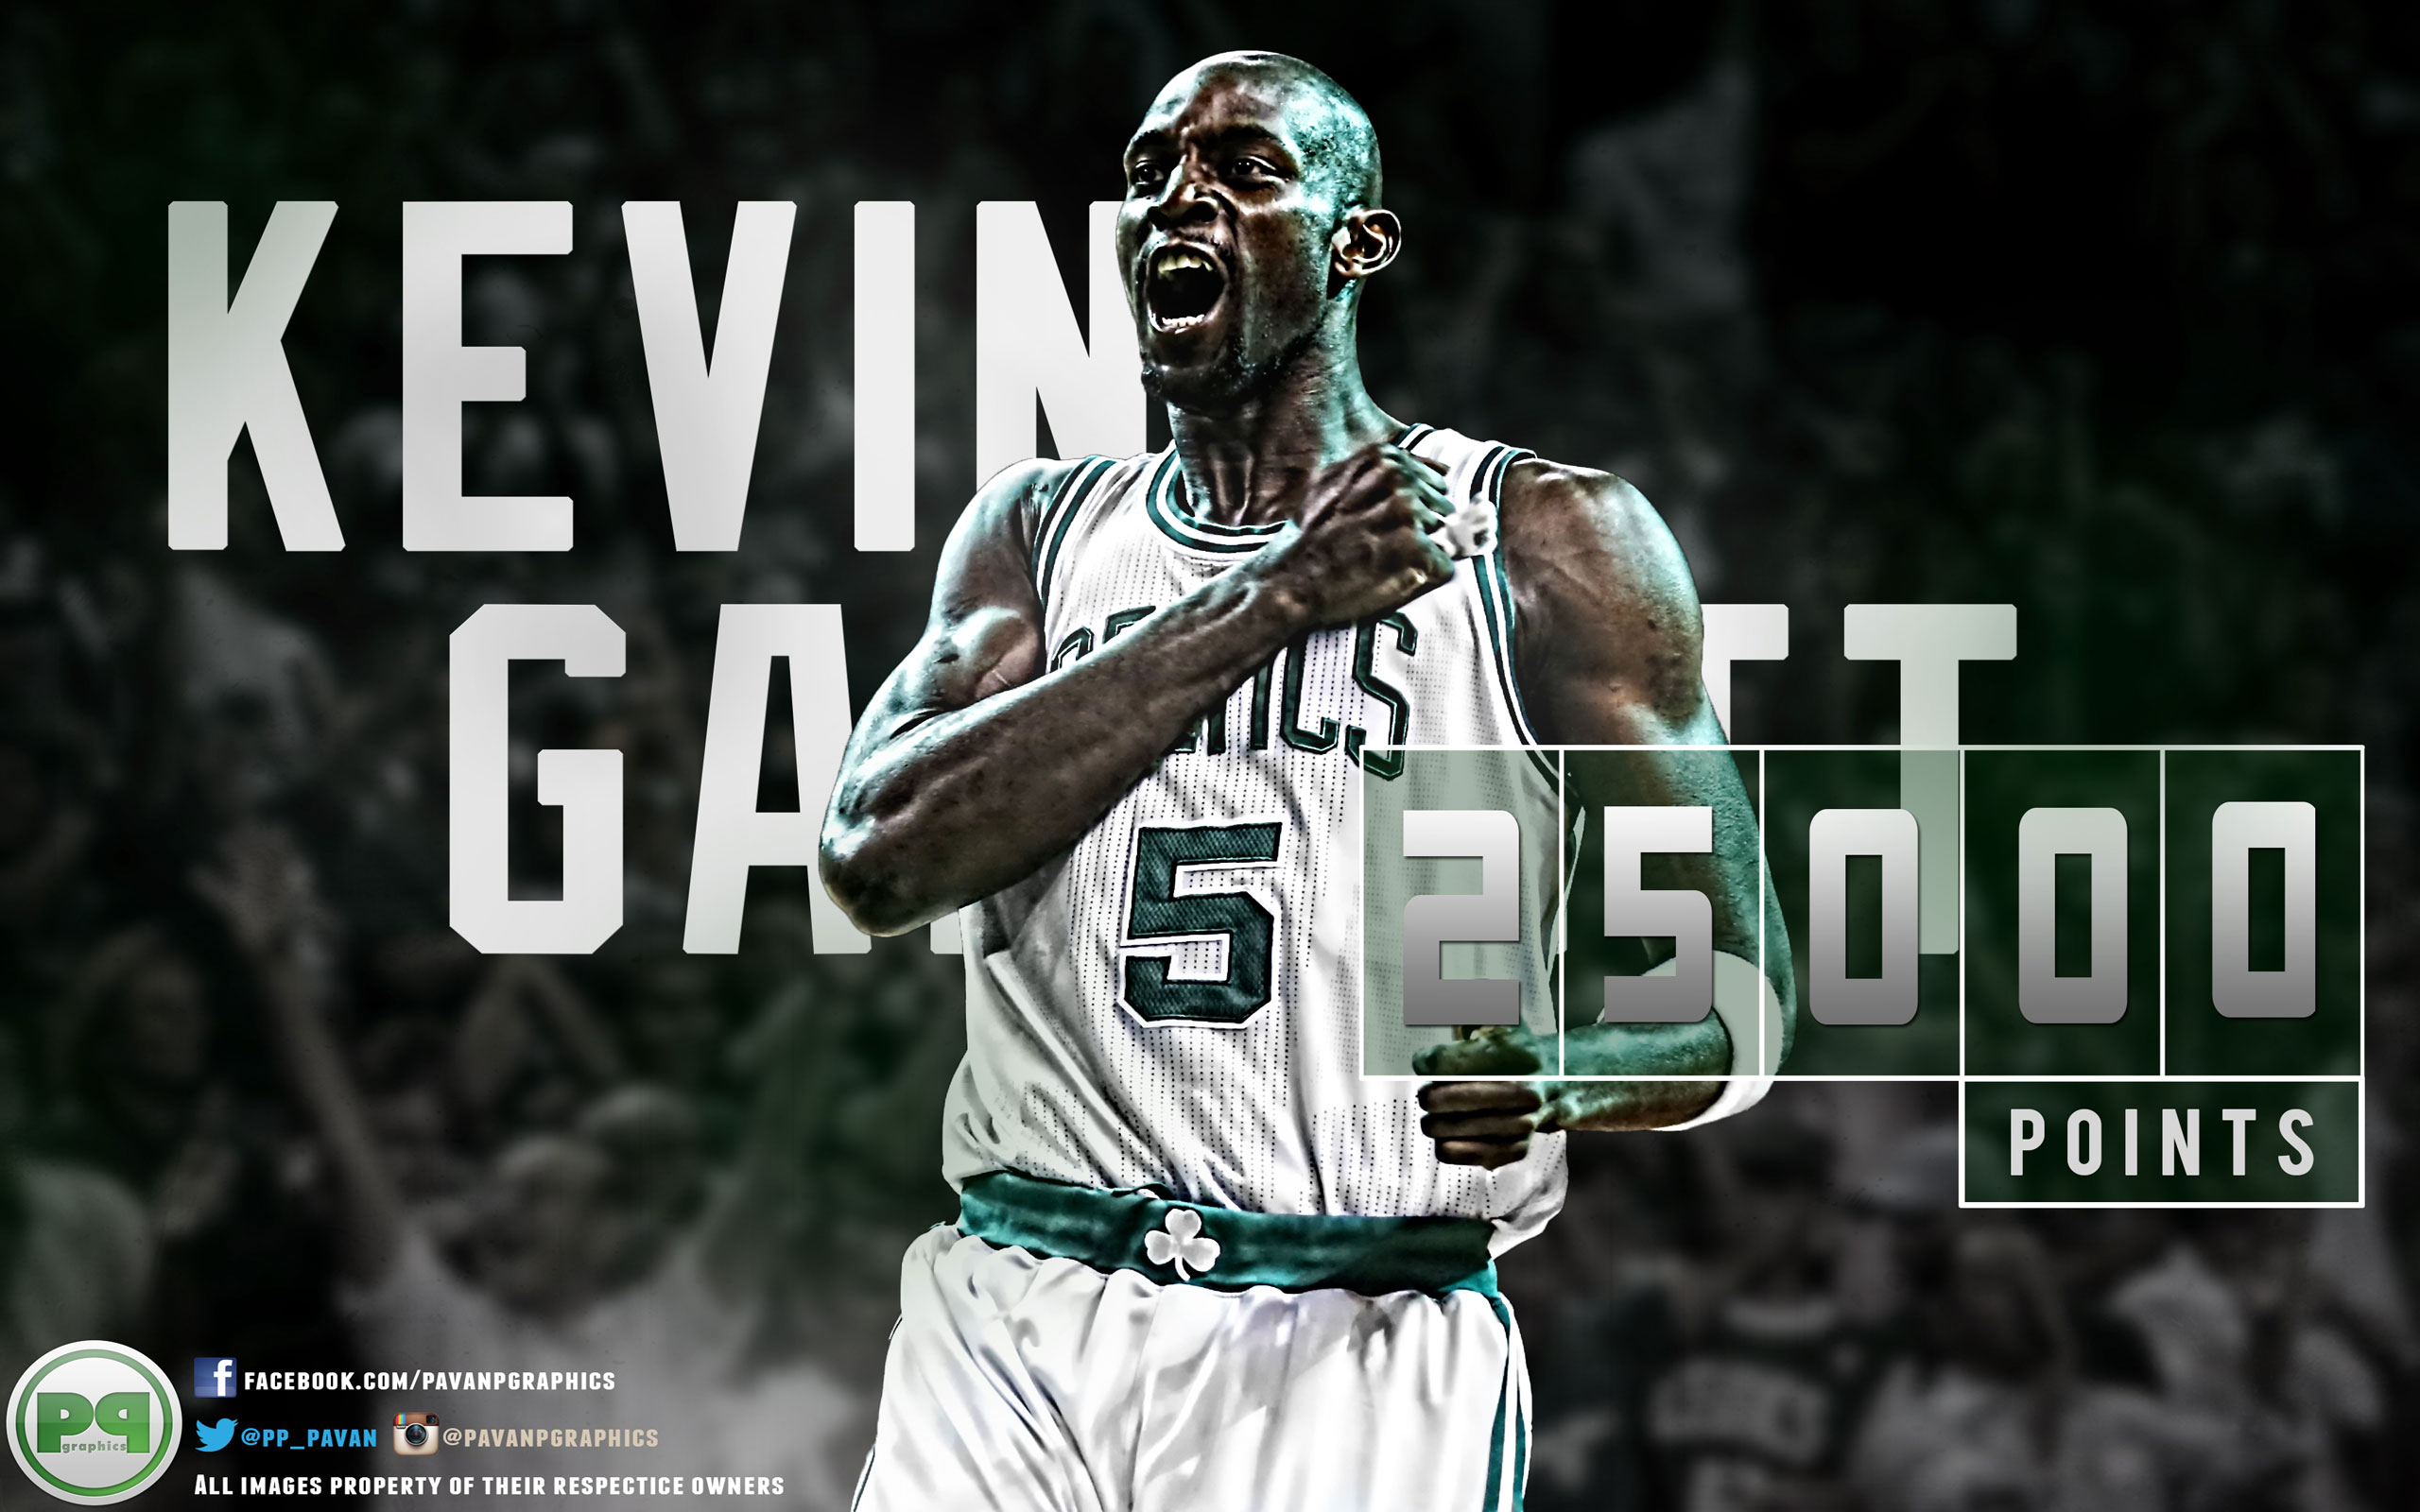 Kevin Garnett Wallpaper Height Weight Position College 2560x1600